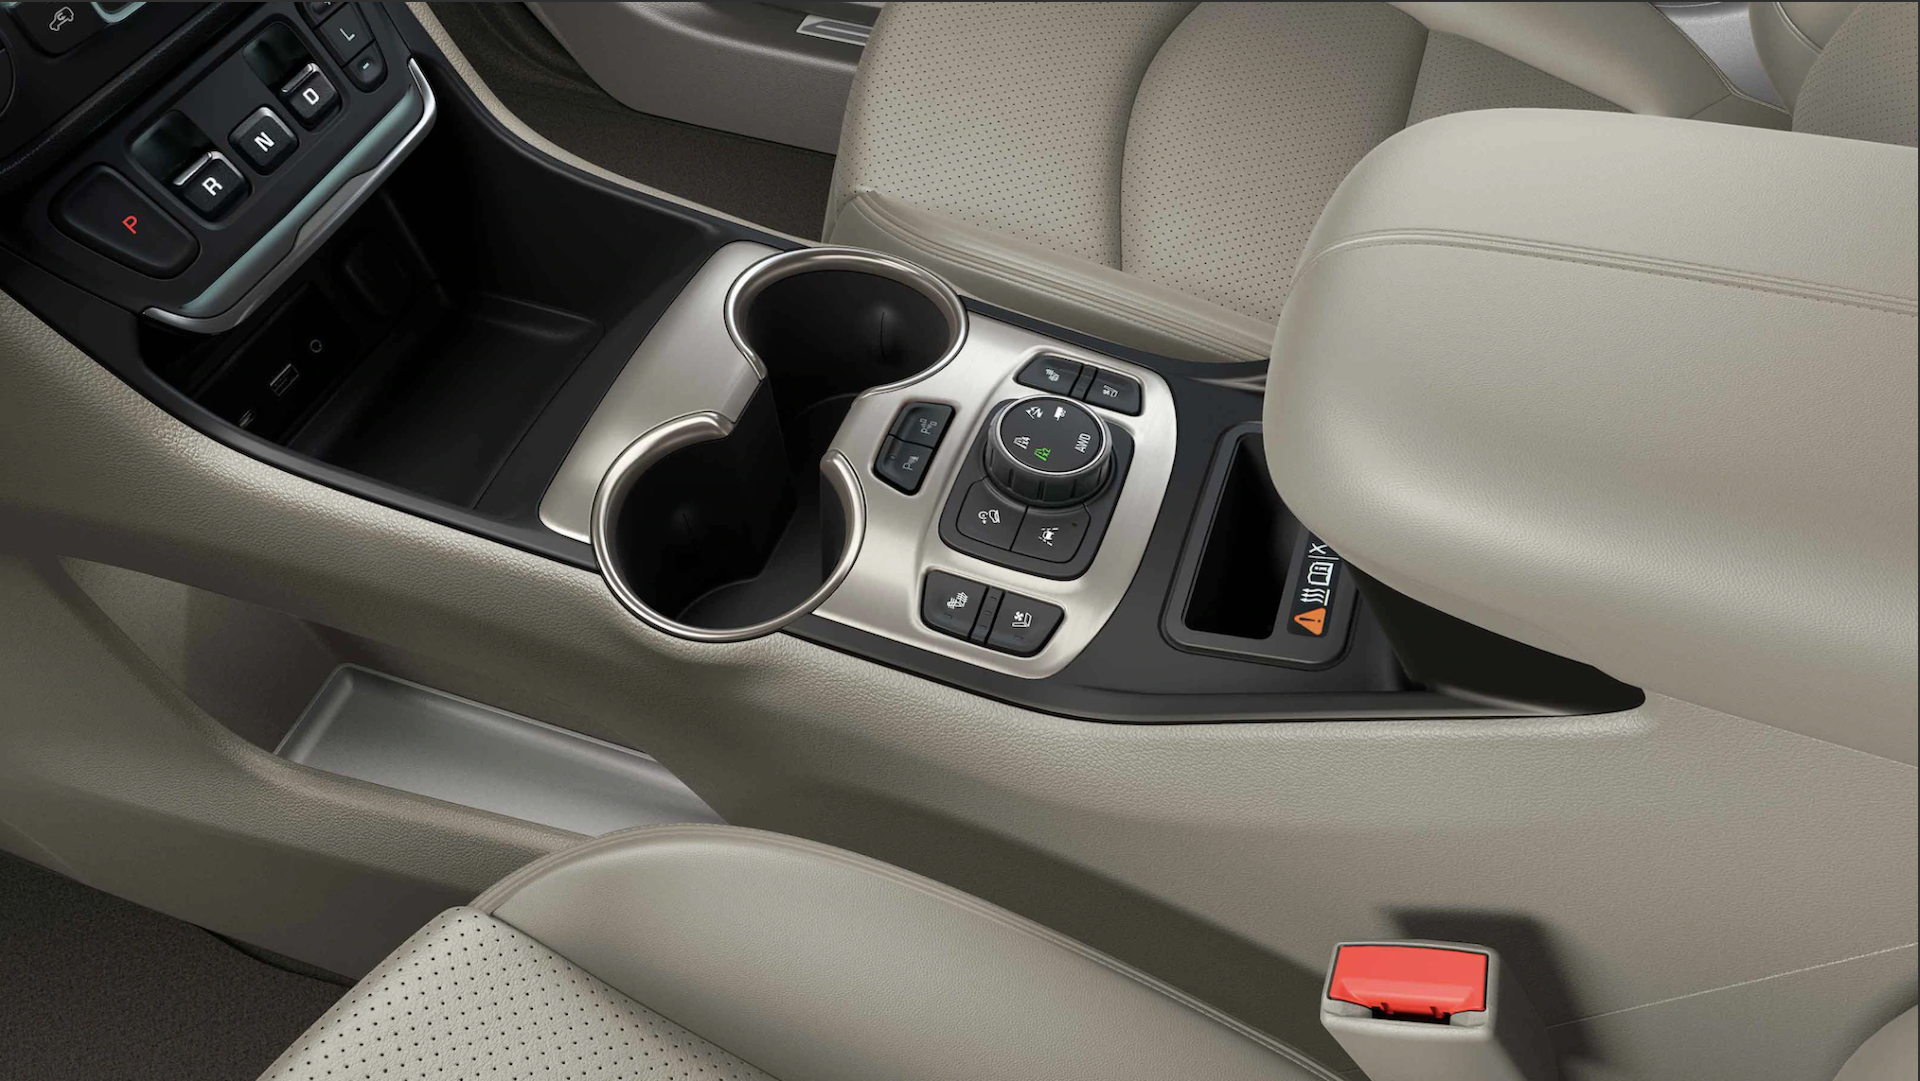 Middle console of the 2021 GMC Terrain